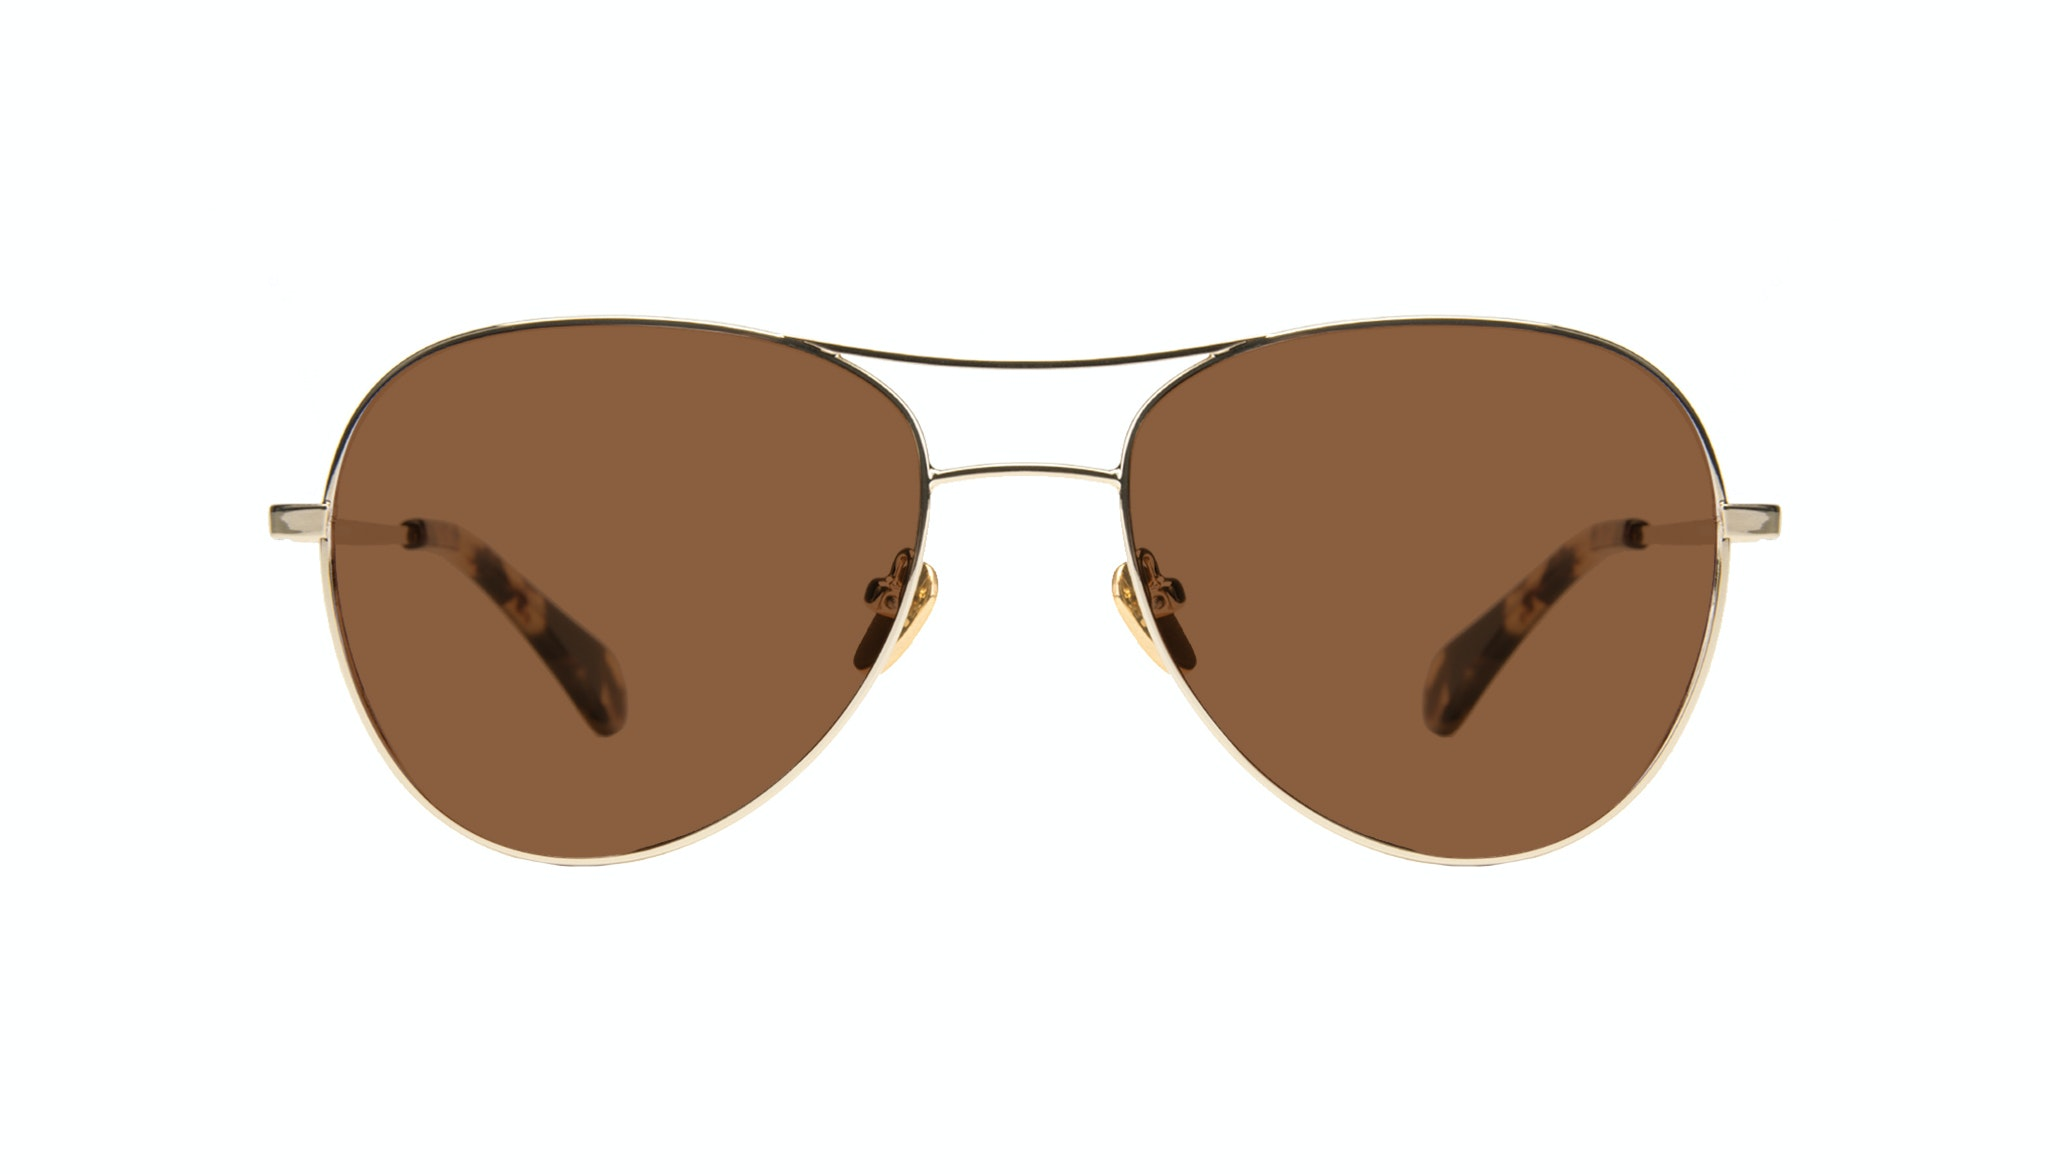 Affordable Fashion Glasses Aviator Sunglasses Women Want Gold Front